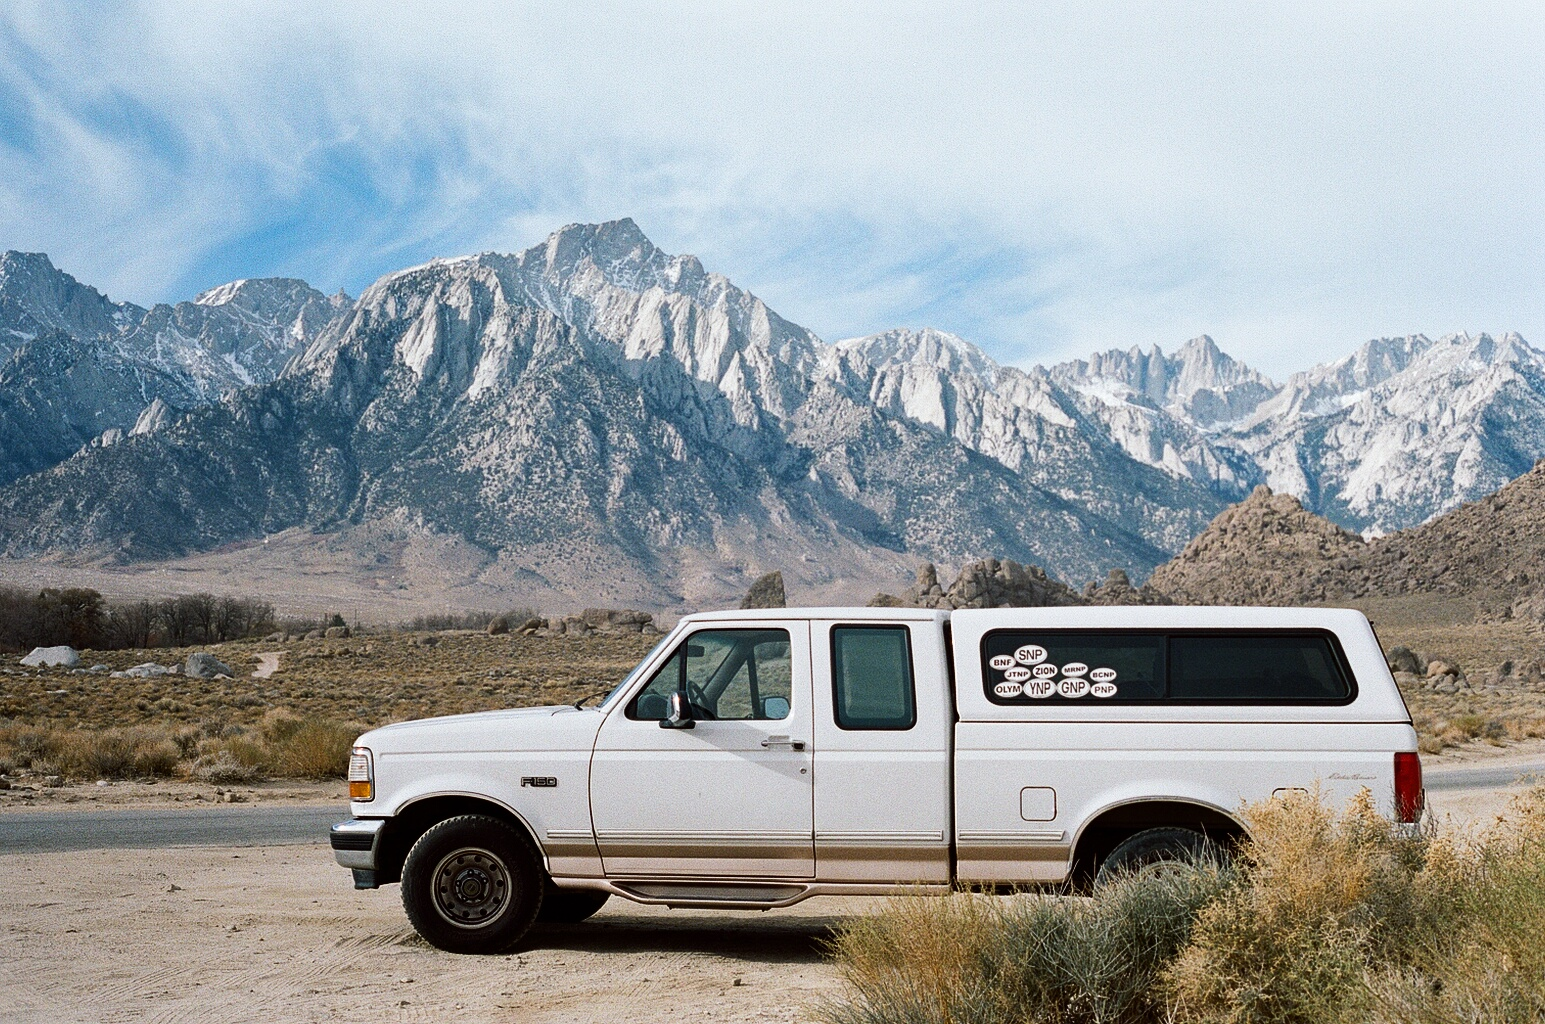 Logan Stoneman's Ford F150, 1997, EDDIE BAUER EDITION